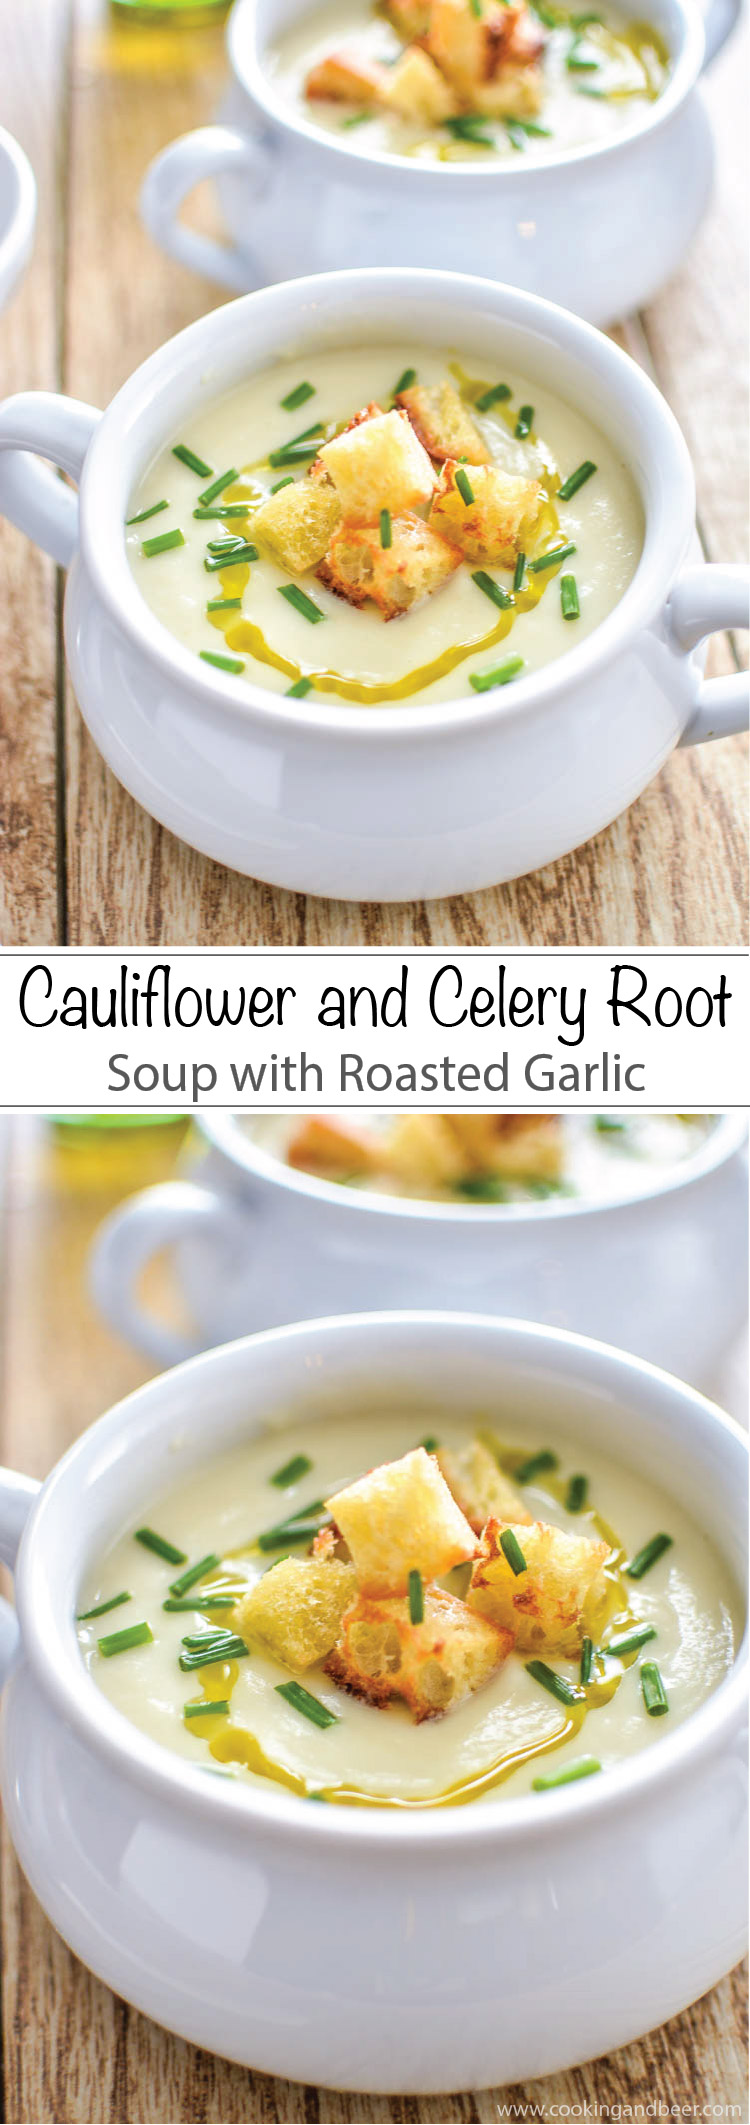 ... and Celery Root Soup with Roasted Garlic. | www.cookingandbeer.com